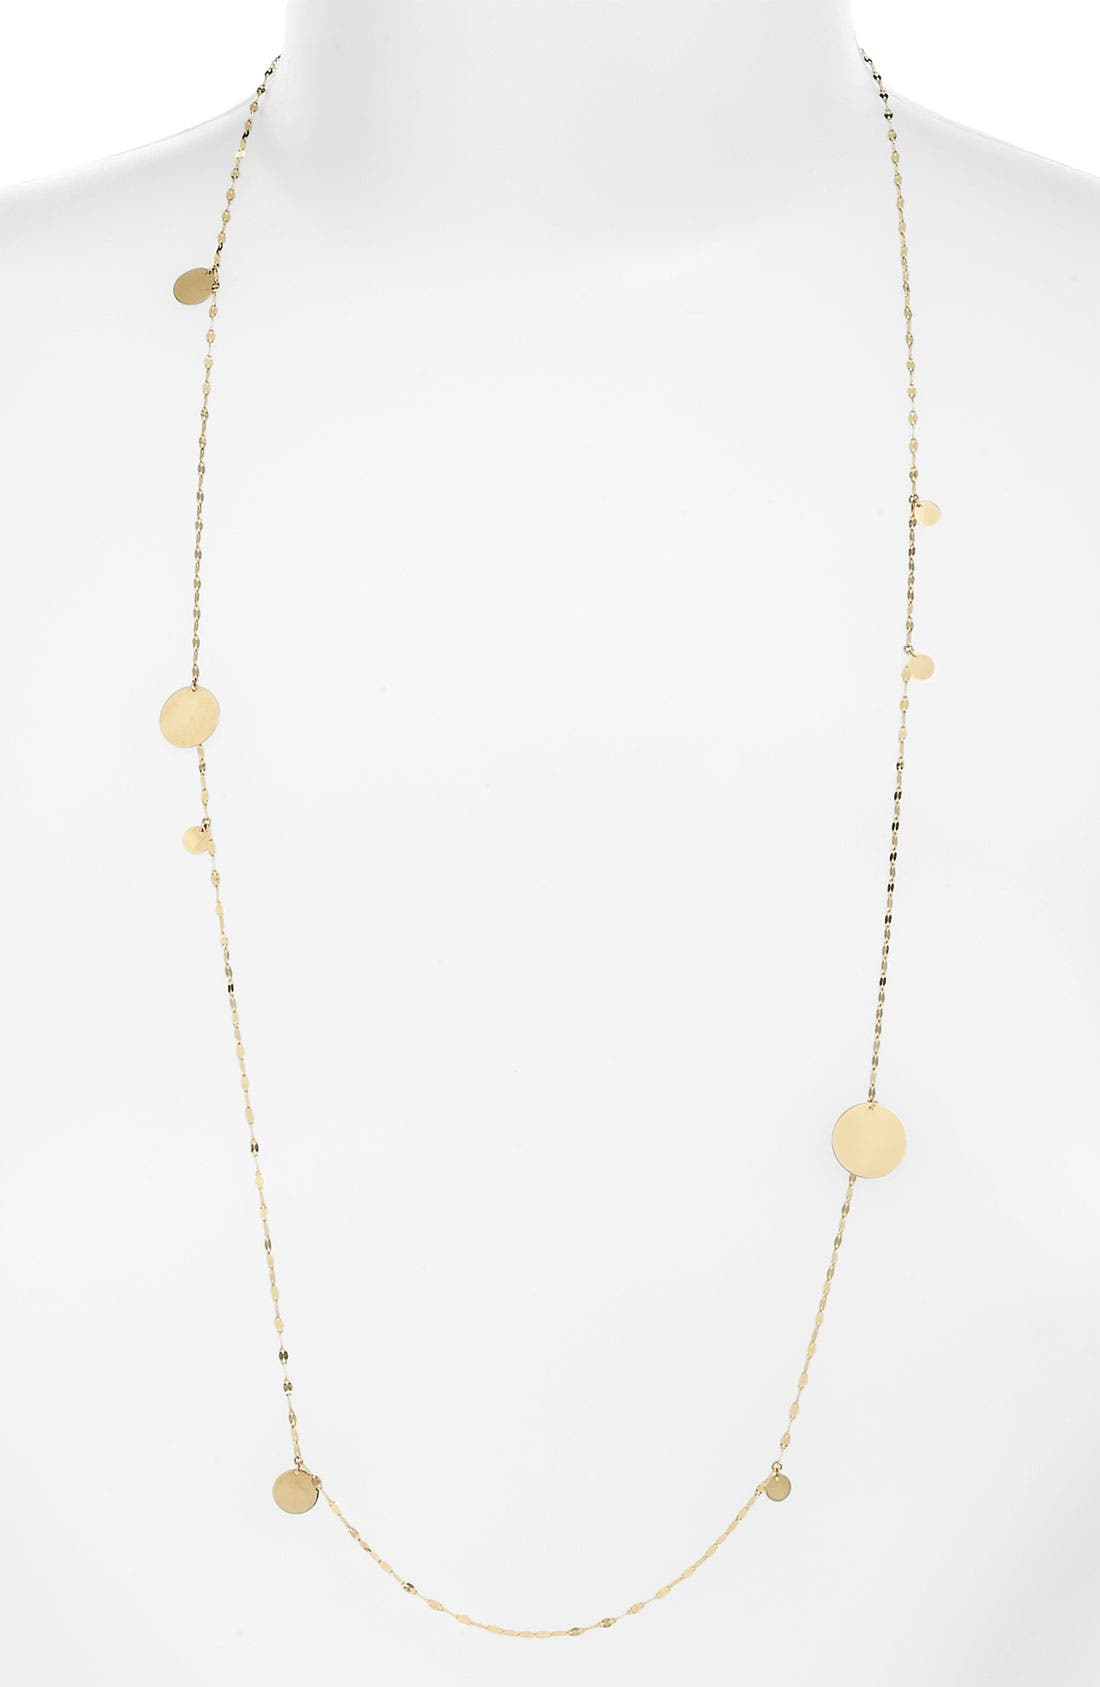 Main Image - Lana Jewelry 'Gypsy' Long Disc Necklace